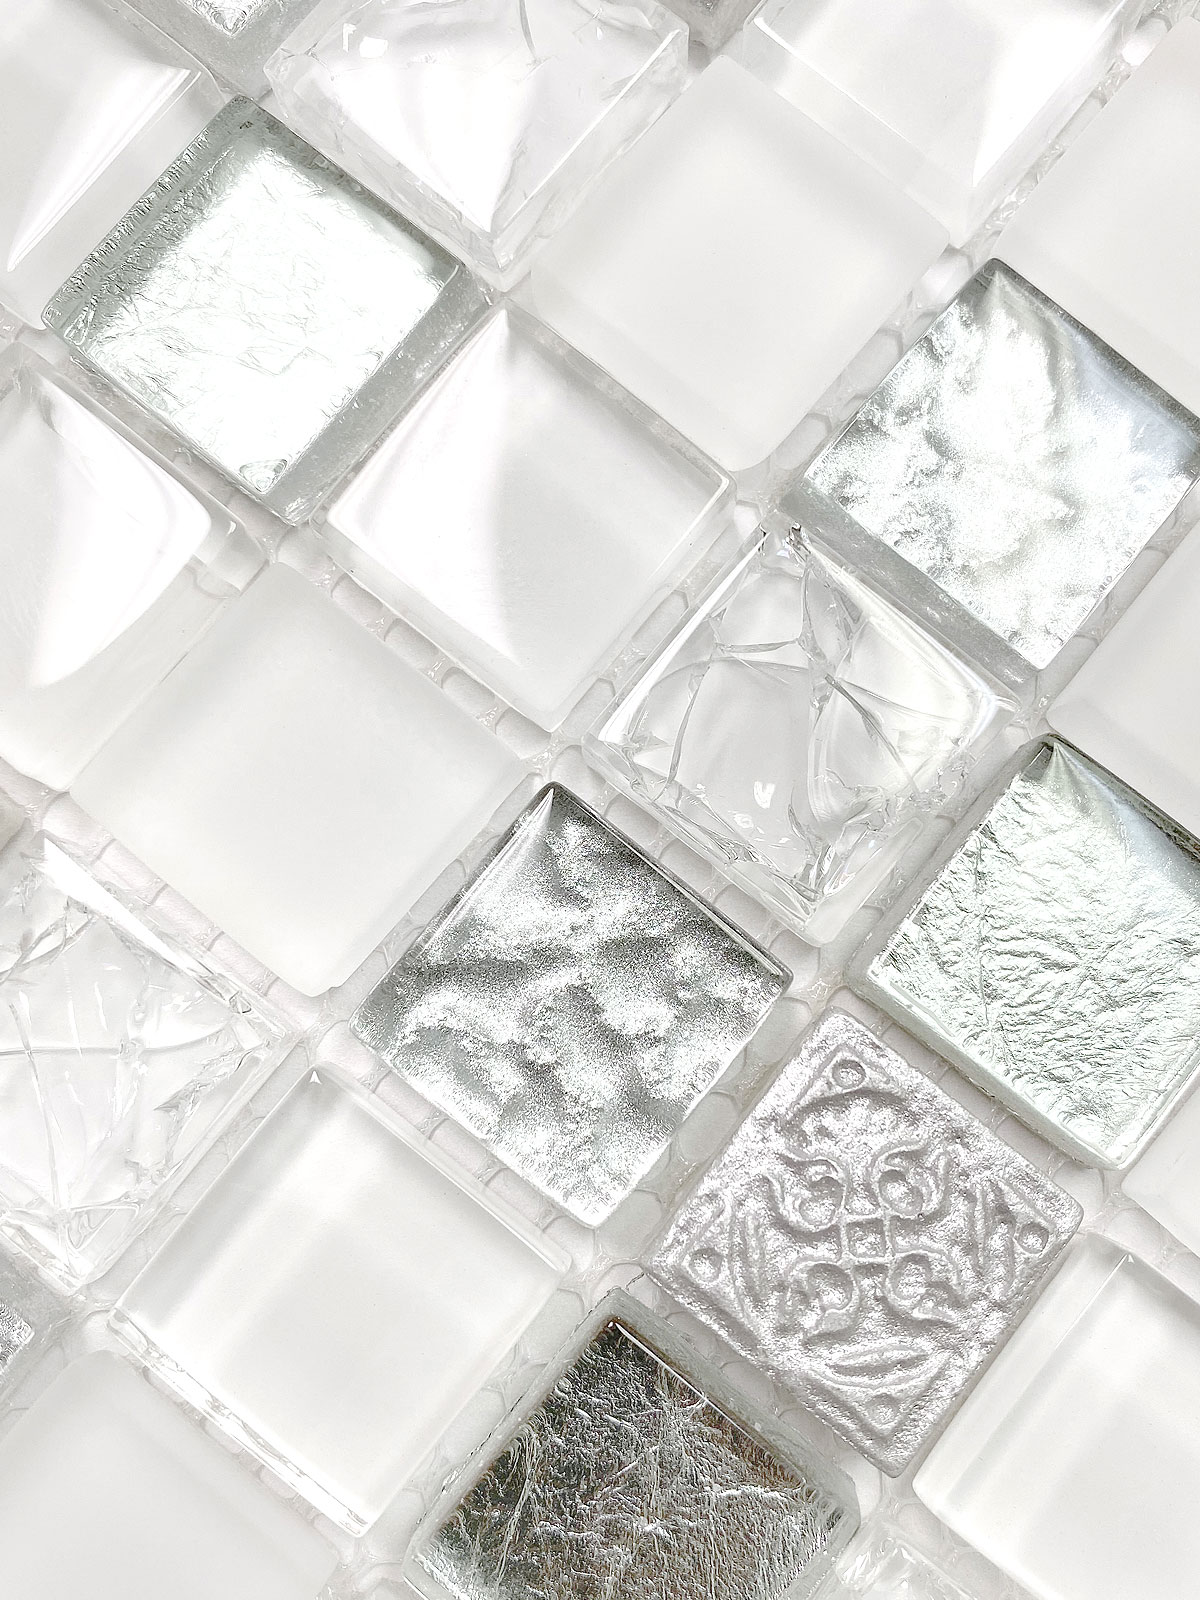 White Silver Mosaic Backsplash Tile 5 BA1206